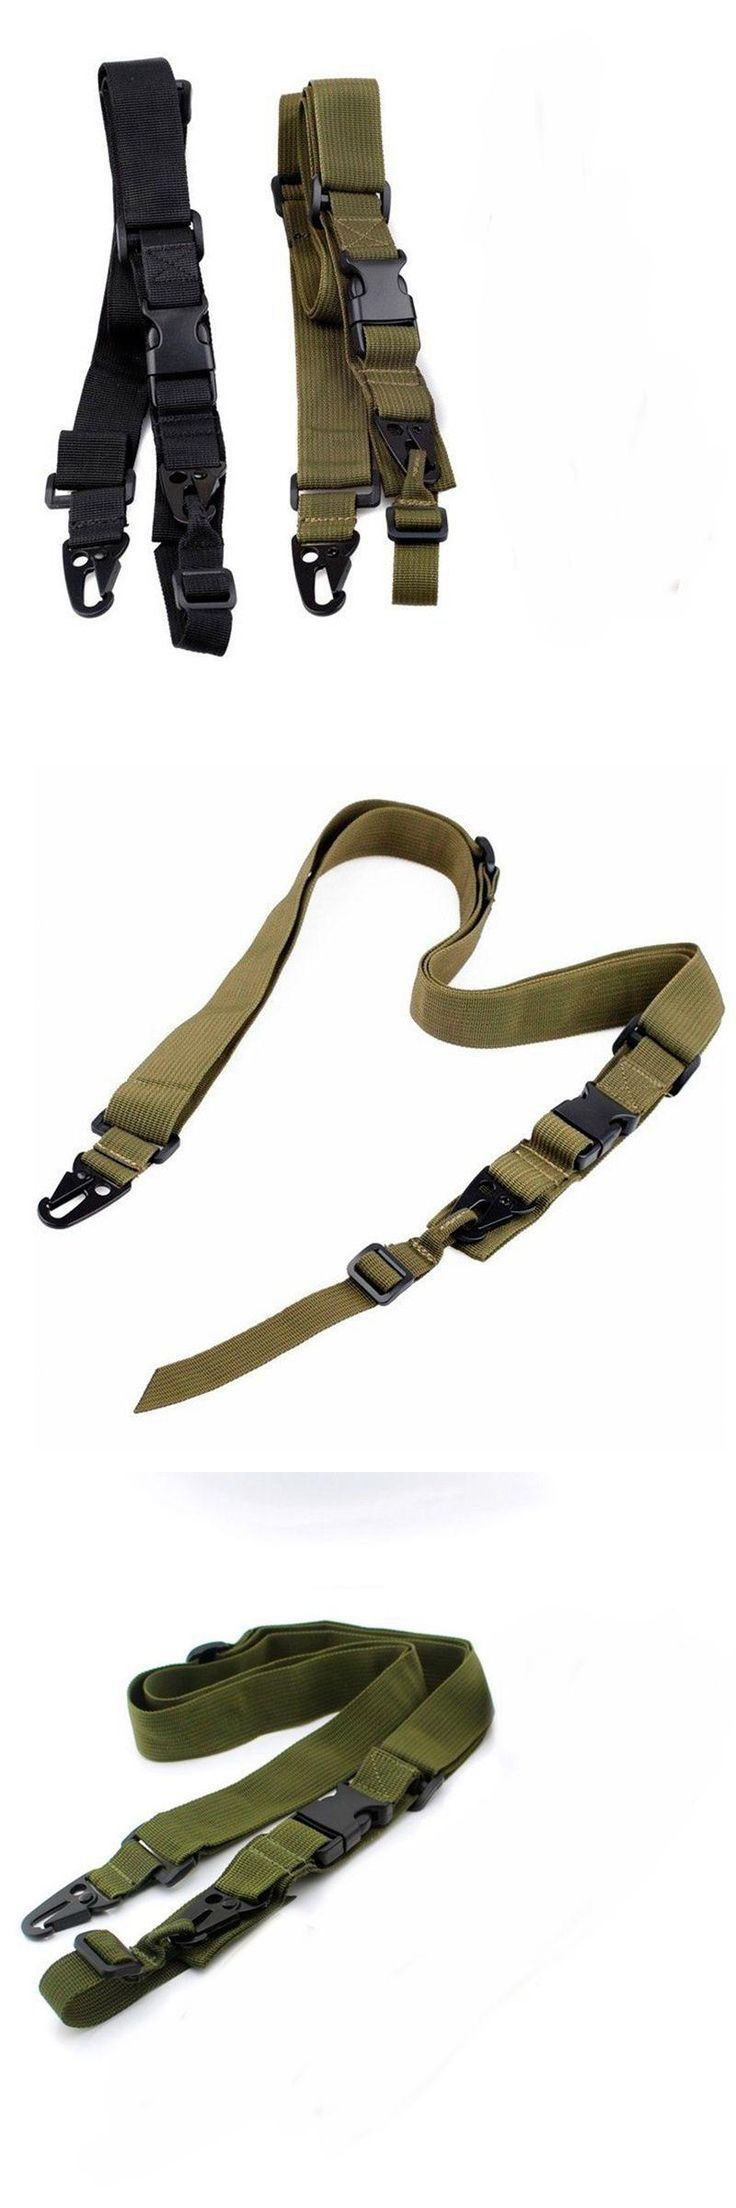 [Visit to Buy] 3 Point Airsoft Hunting Belt Tactical Military   Army Green Gear Gun Sling Strap Outdoor Camping Survival Sling ht088 #Advertisement